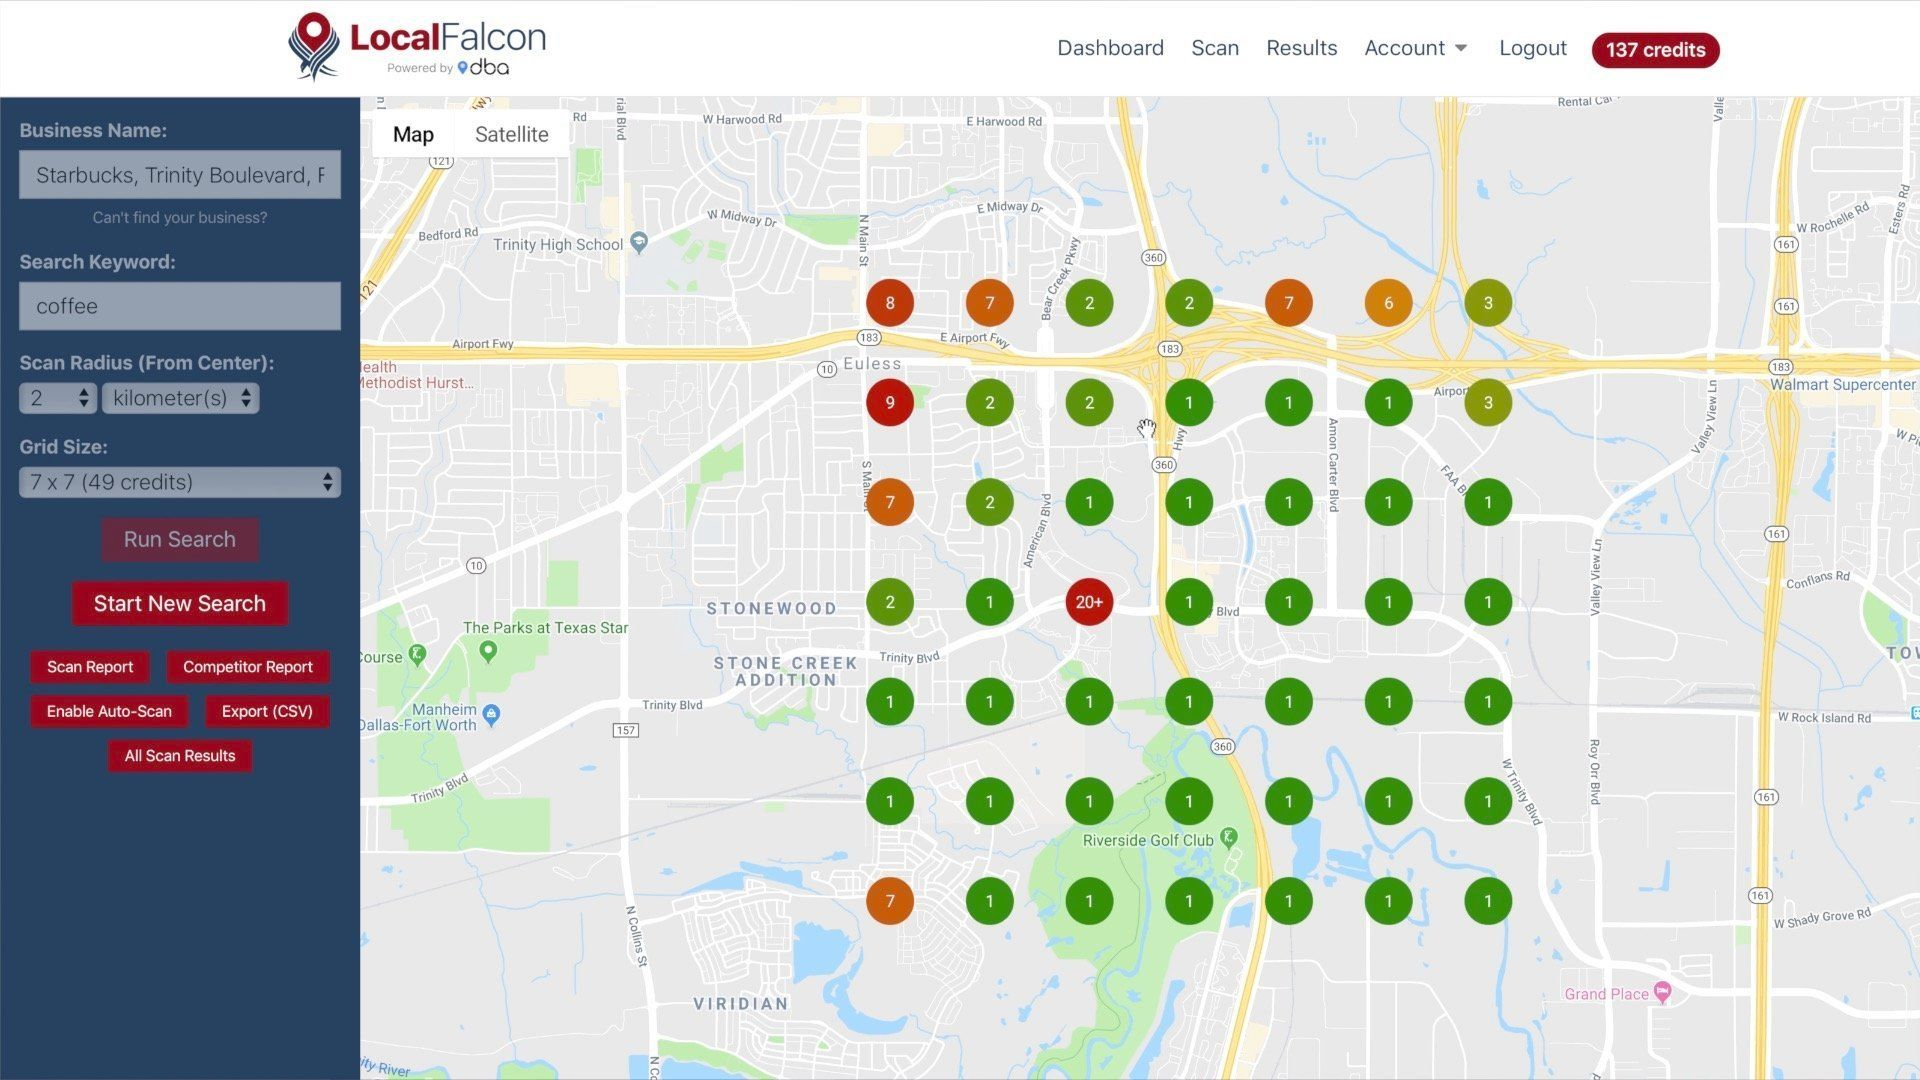 Local Falcon: How to Check Local Rankings